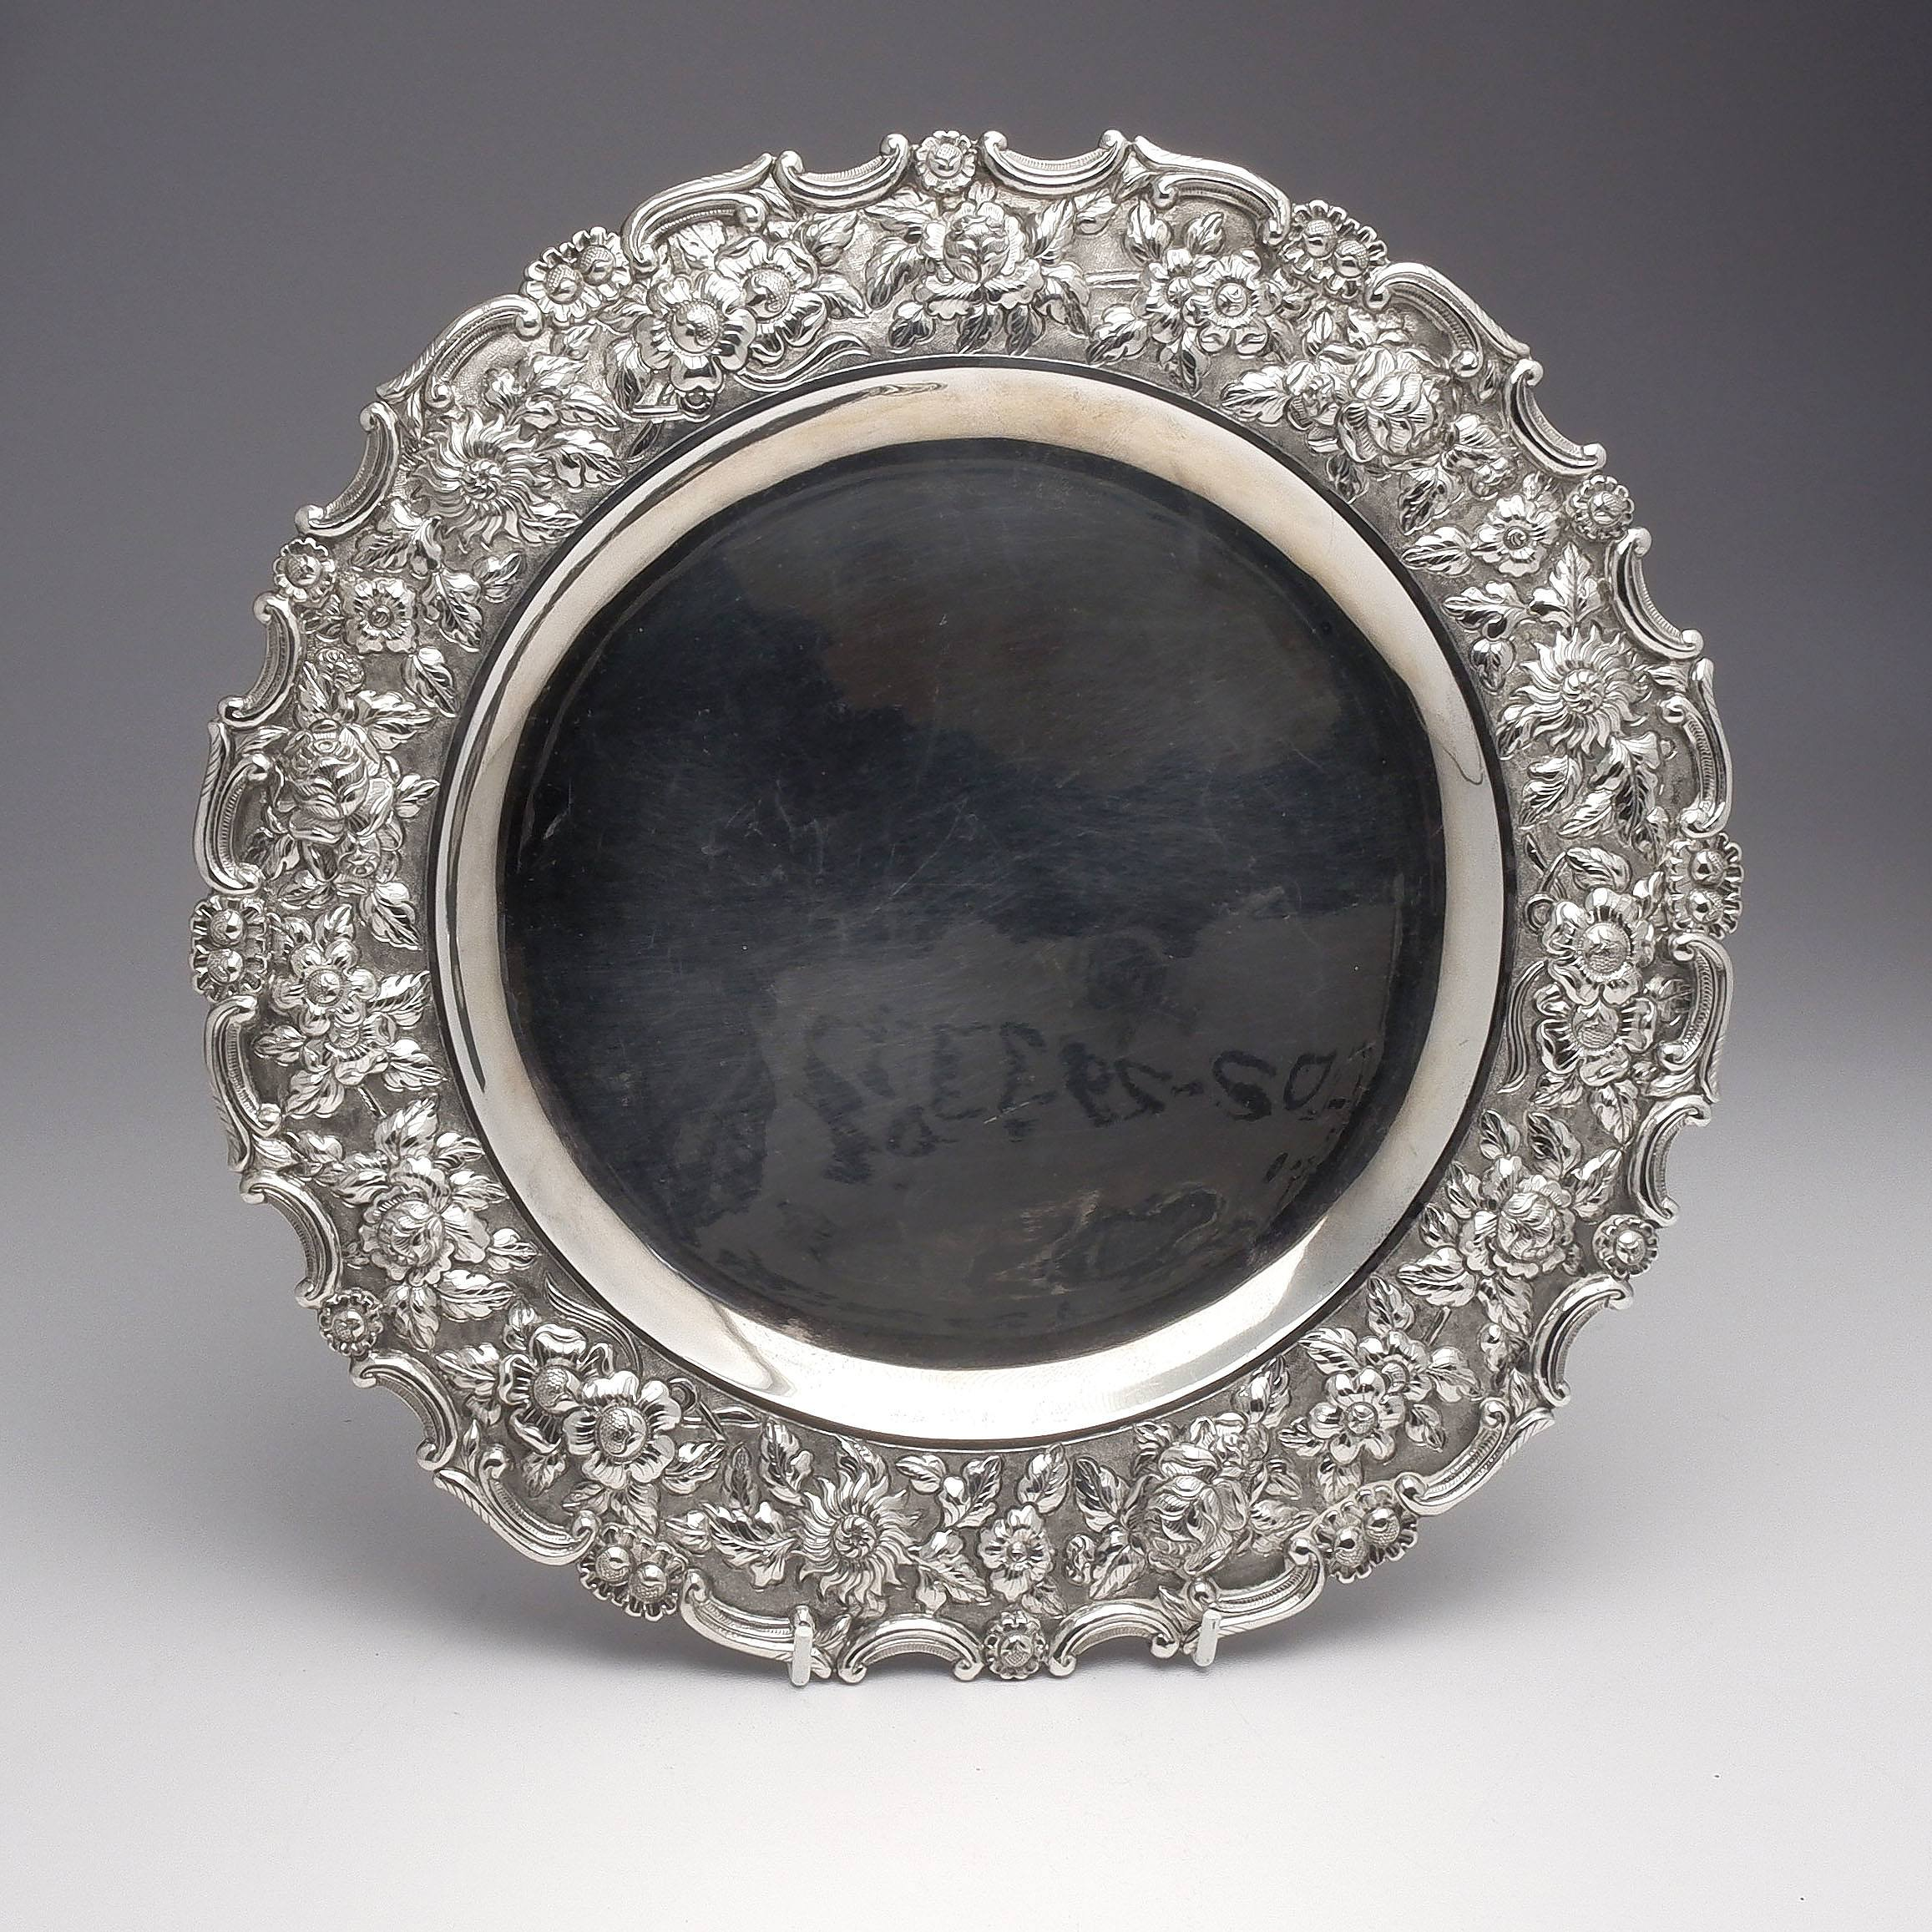 'Chinese TaiPing Sterling Silver Tray with Heavy Repousse Border, 679g'